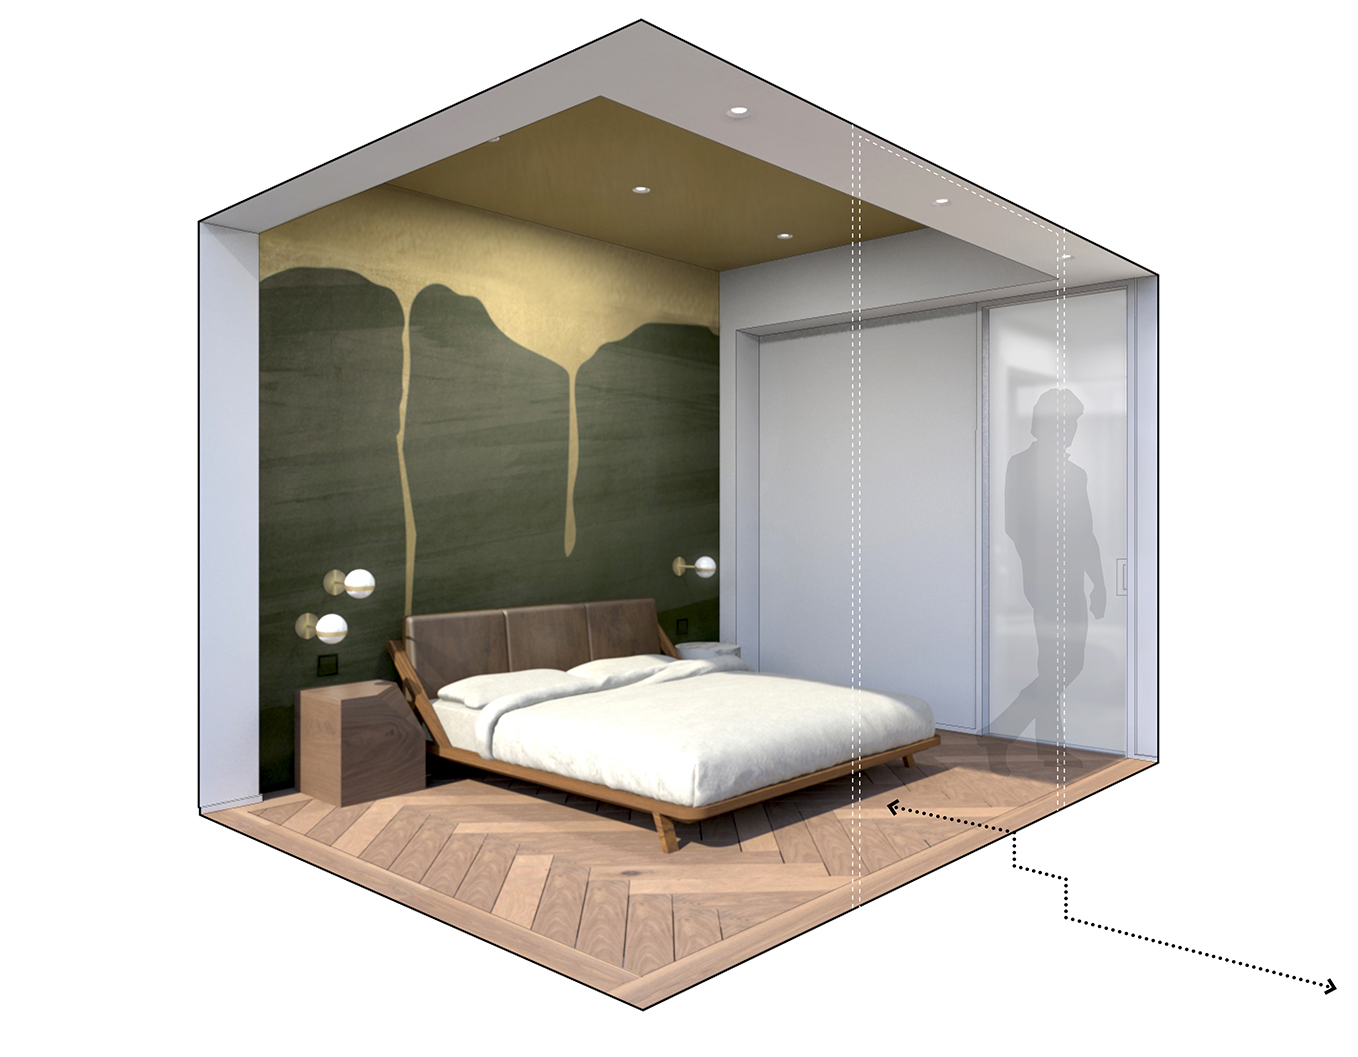 STADT Architecture, Chelsea Pied-a-terre, bedroom, Great Bed of Ware, Canopy Bed, Calico Wallpaper, LV WOOD